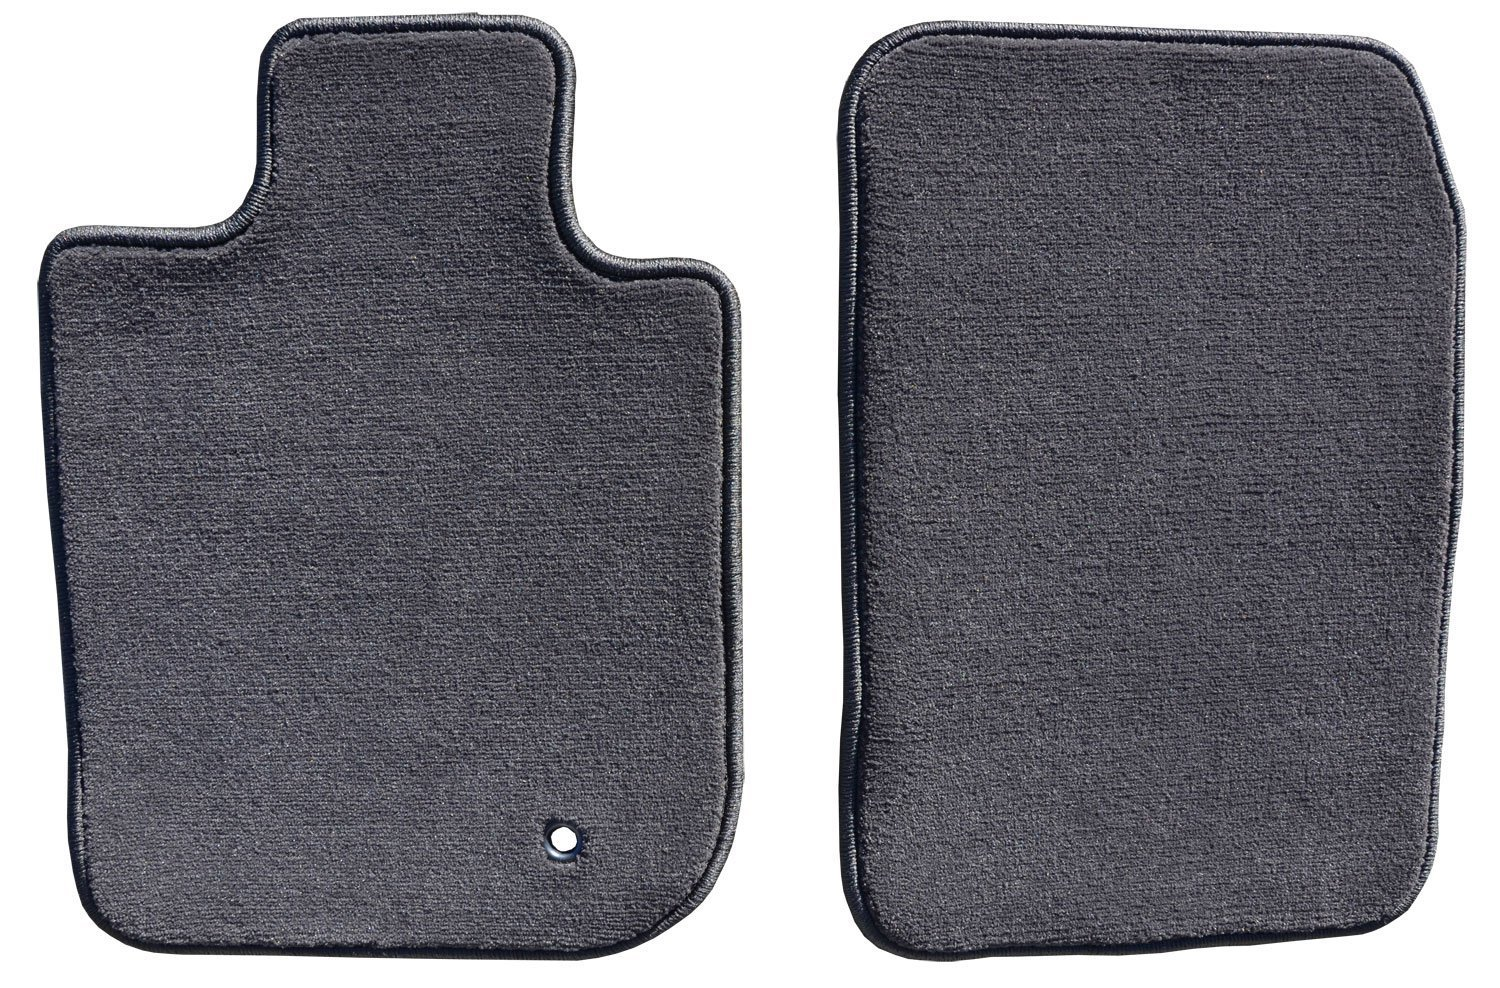 GG Bailey D51521-F1A-BK-OR Custom Fit Car Mats for 2013 2016 2015 2014 2017 Aston Martin Vanquish Coupe Black Oriental Front Set